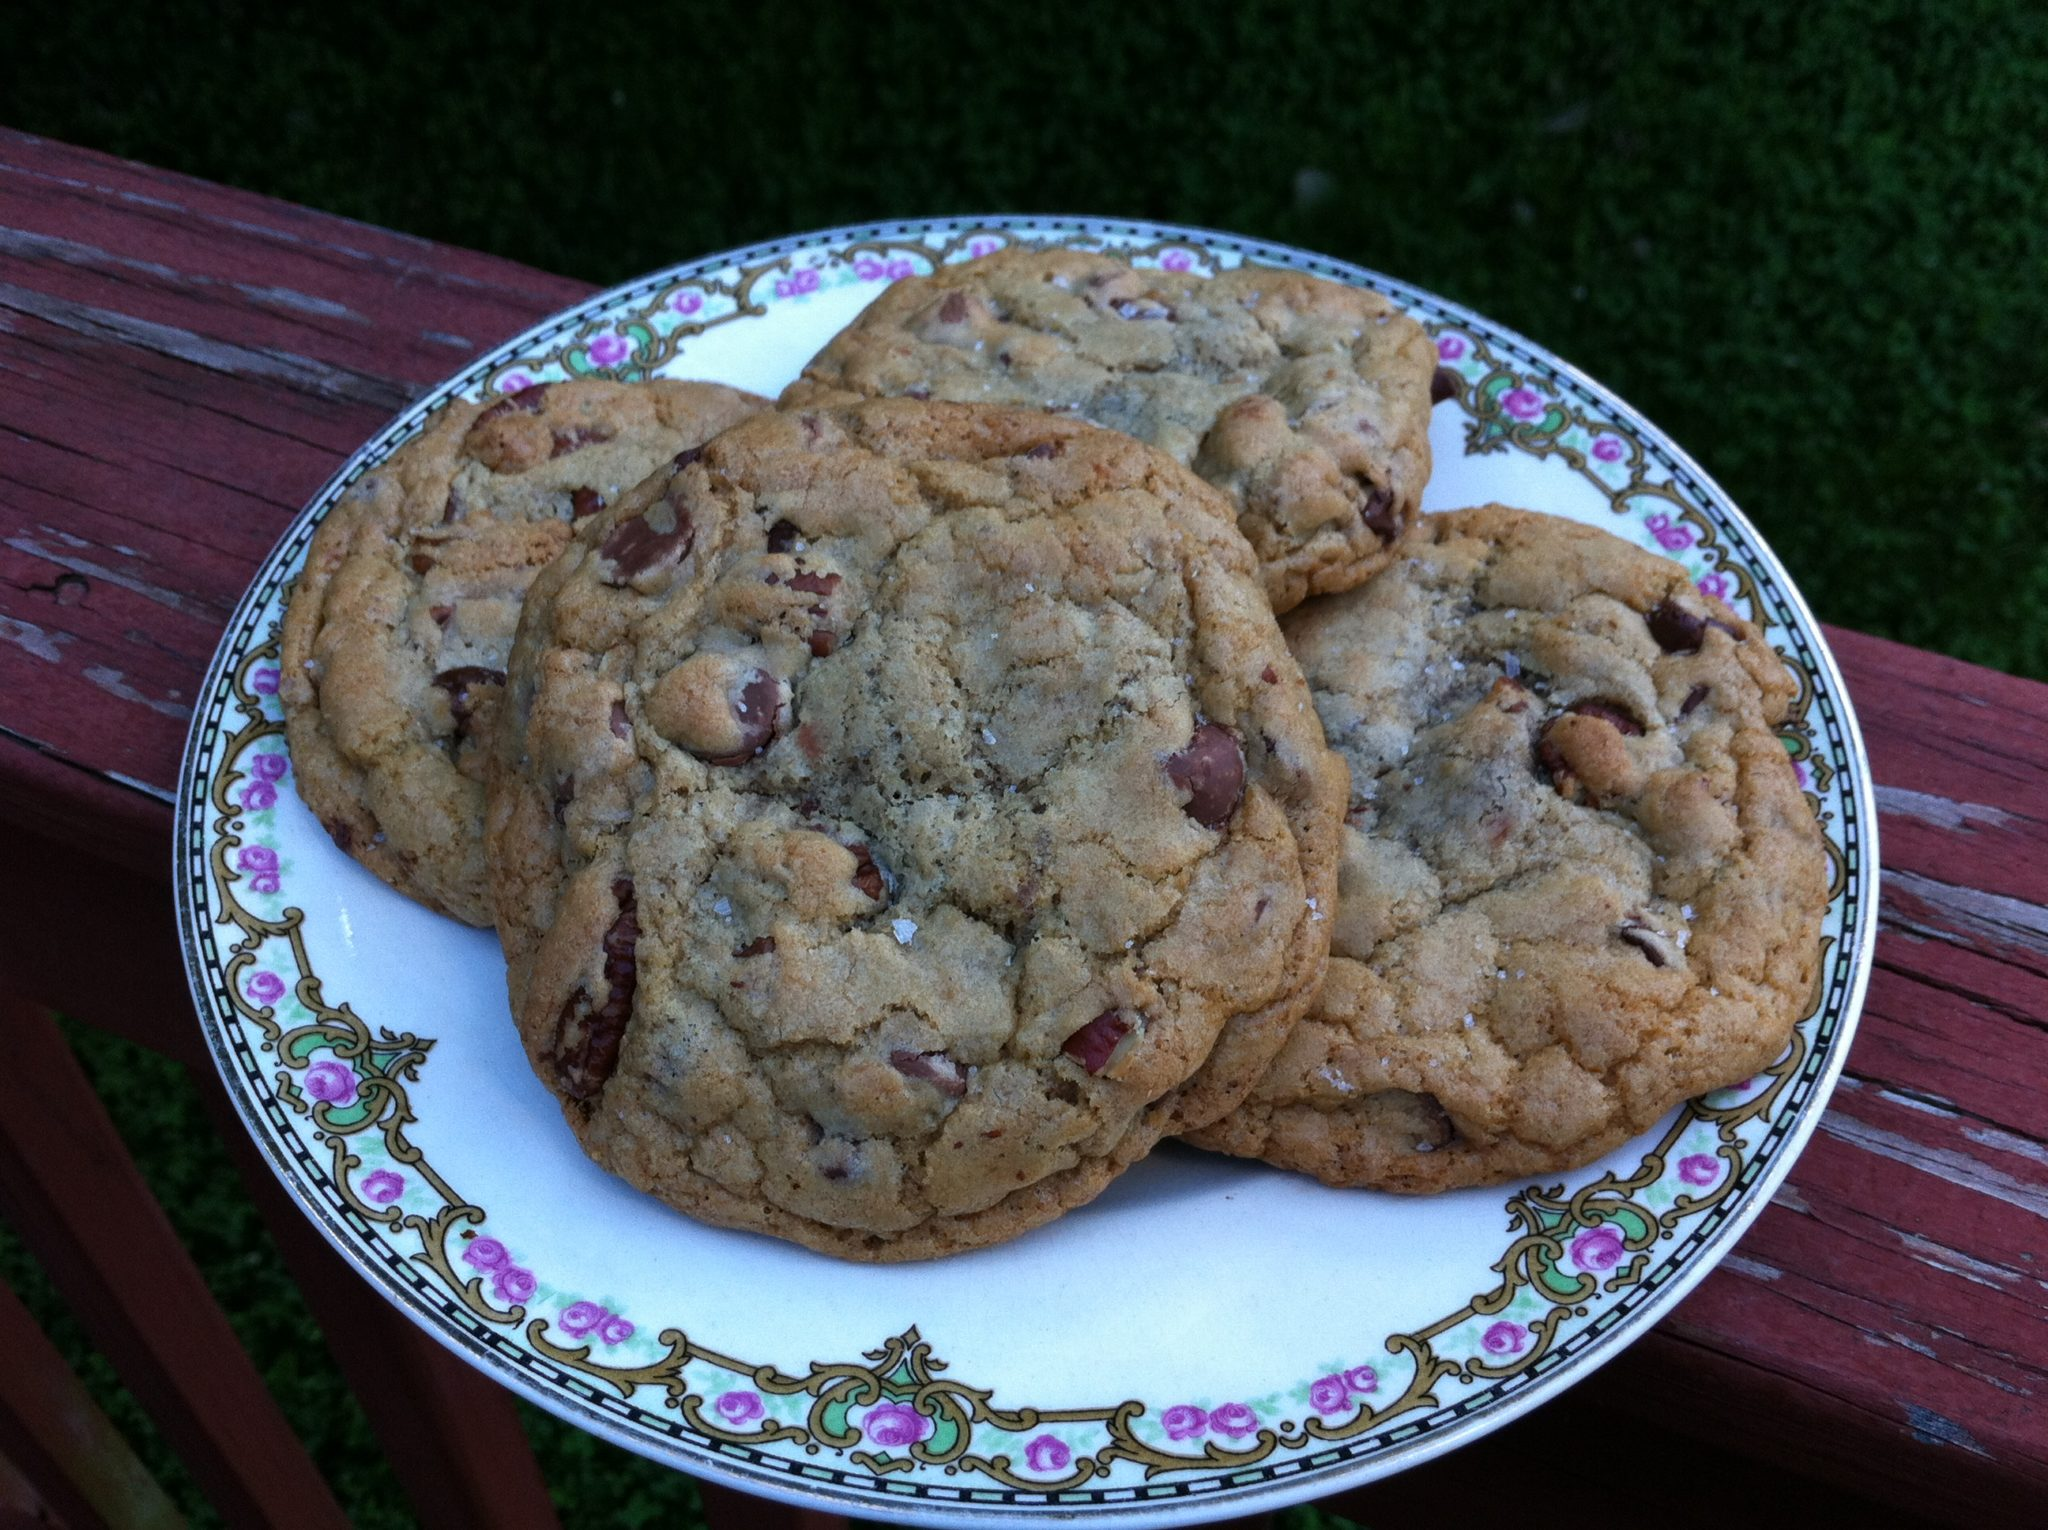 Hunka Chunka Chocolate Chip Cookies